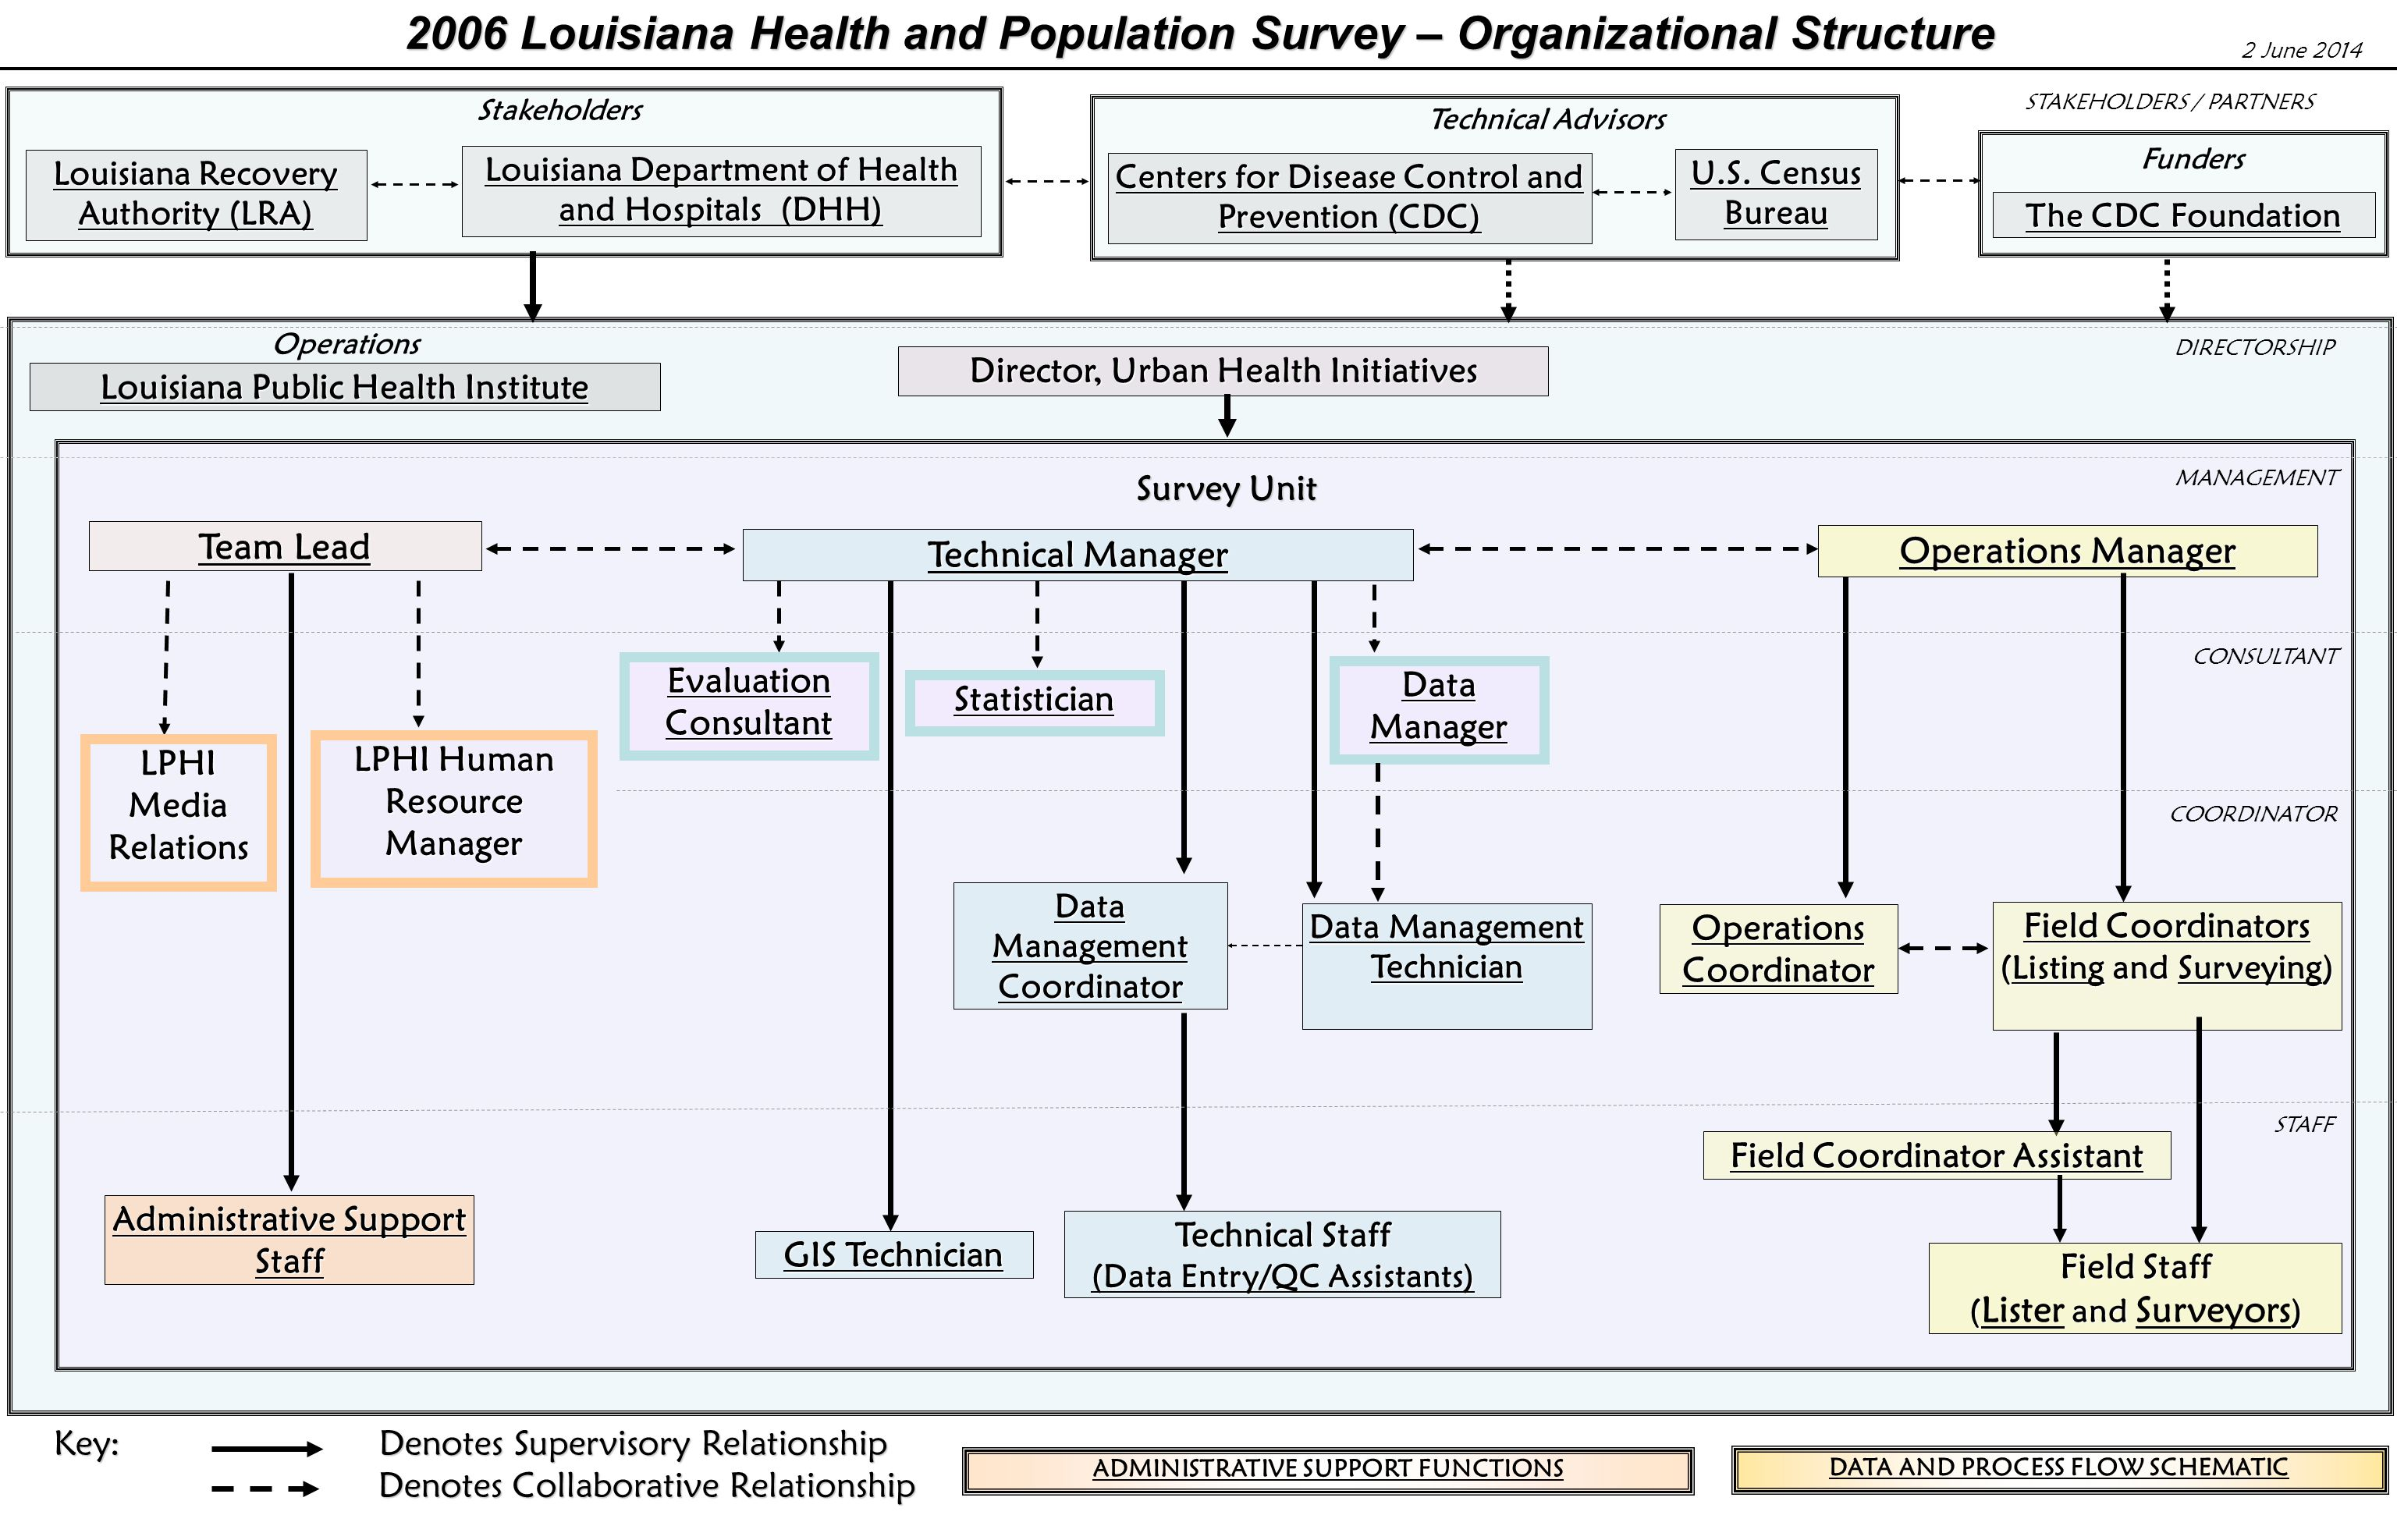 2006 Louisiana Health and Population Survey – Organizational Structure Louisiana Recovery Authority (LRA) Louisiana Recovery Authority (LRA) Louisiana Department of Health and Hospitals (DHH) Louisiana Department of Health and Hospitals (DHH) Centers for Disease Control and Prevention (CDC) Centers for Disease Control and Prevention (CDC) U.S.